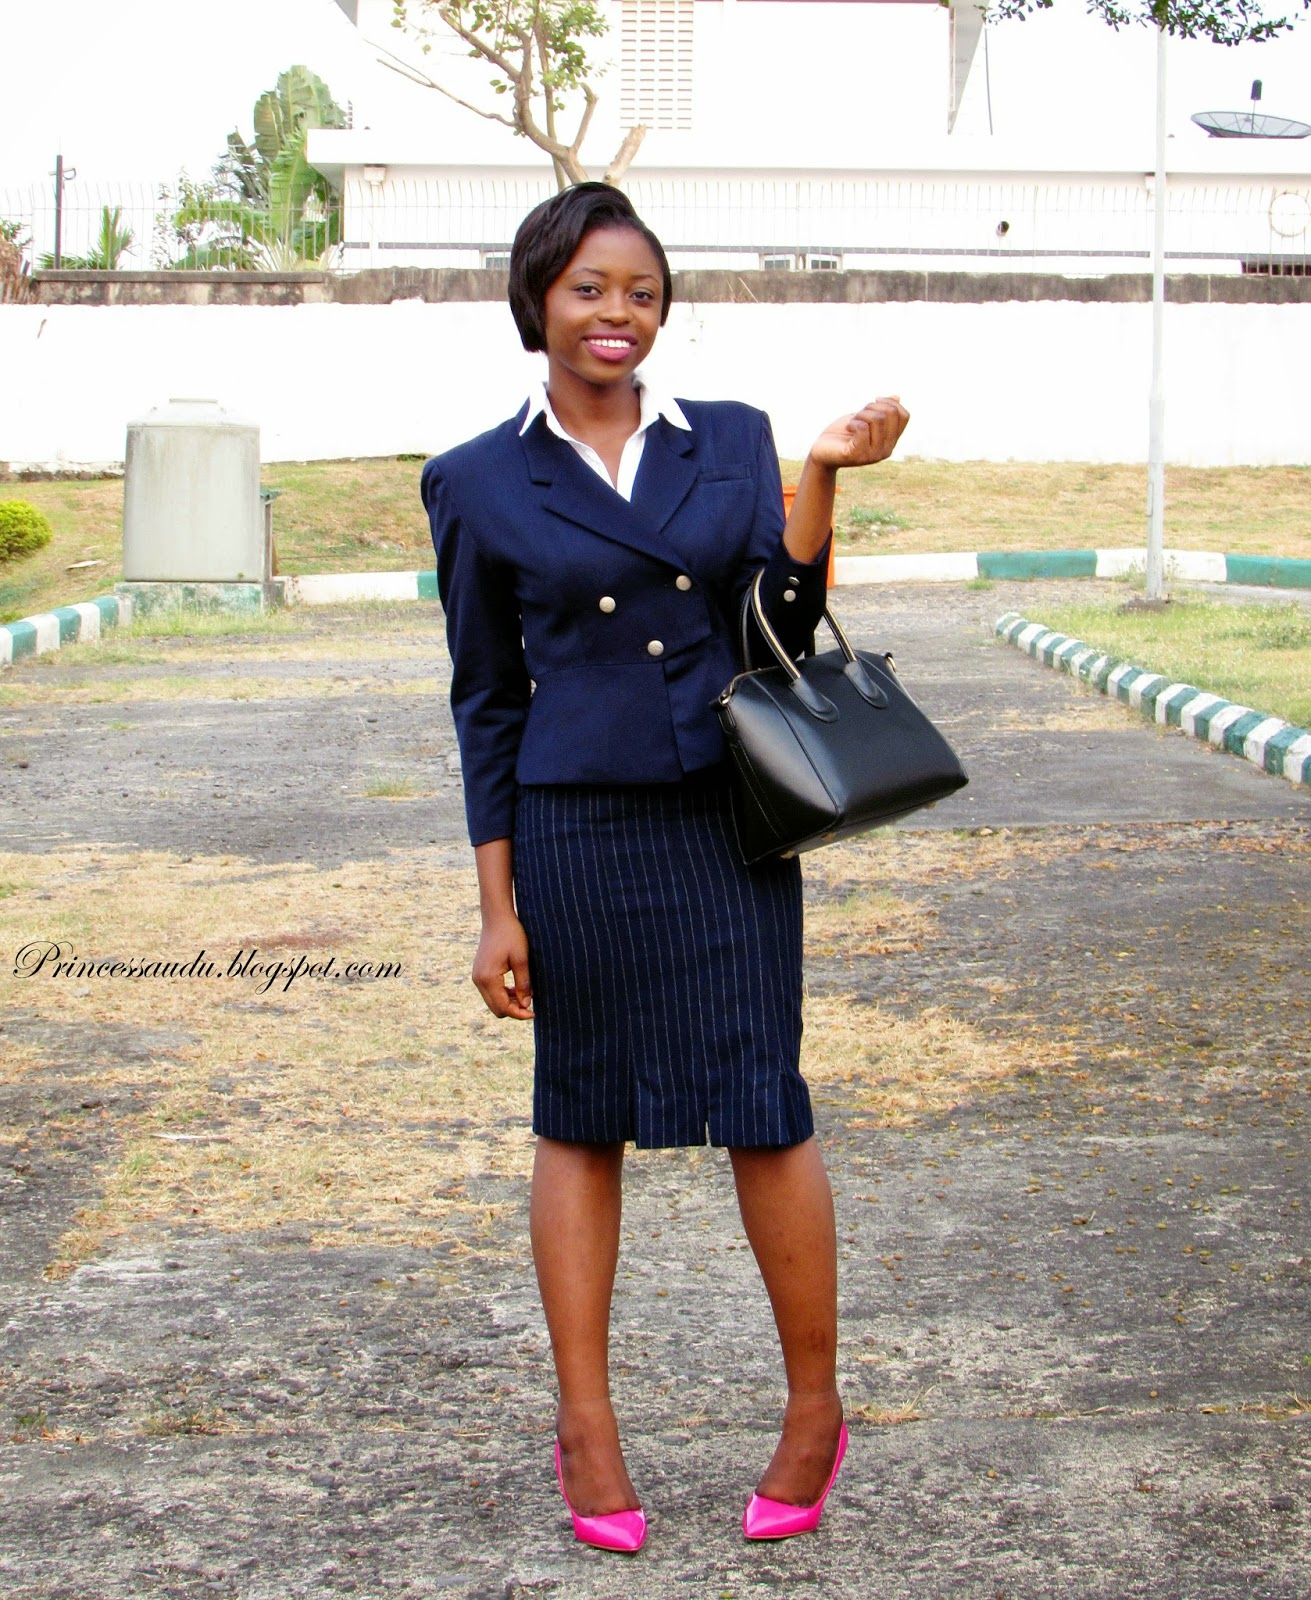 work attire, pink court shoes, black tote bag, pinstripe, vintage blazer, navy blue